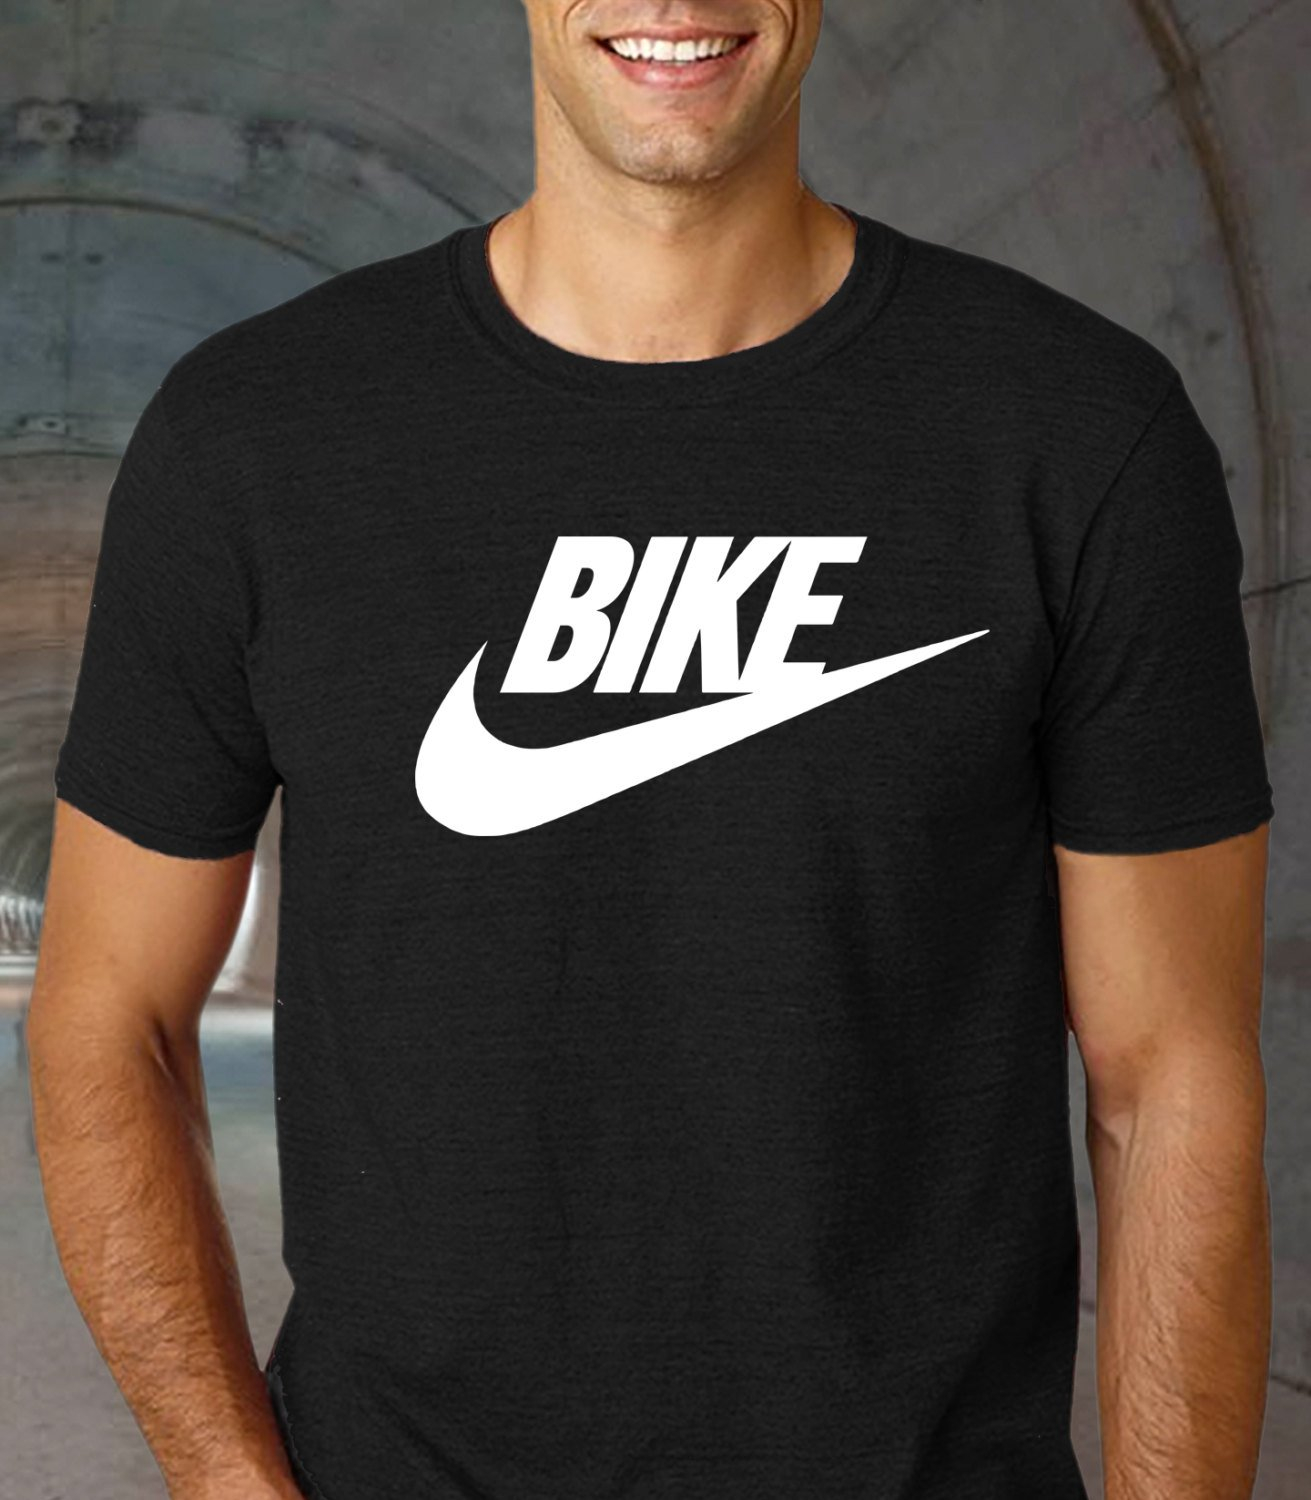 cycle nut tee, cycle gift for men, Cycology, mountain bike gift Black Tshirt For Men